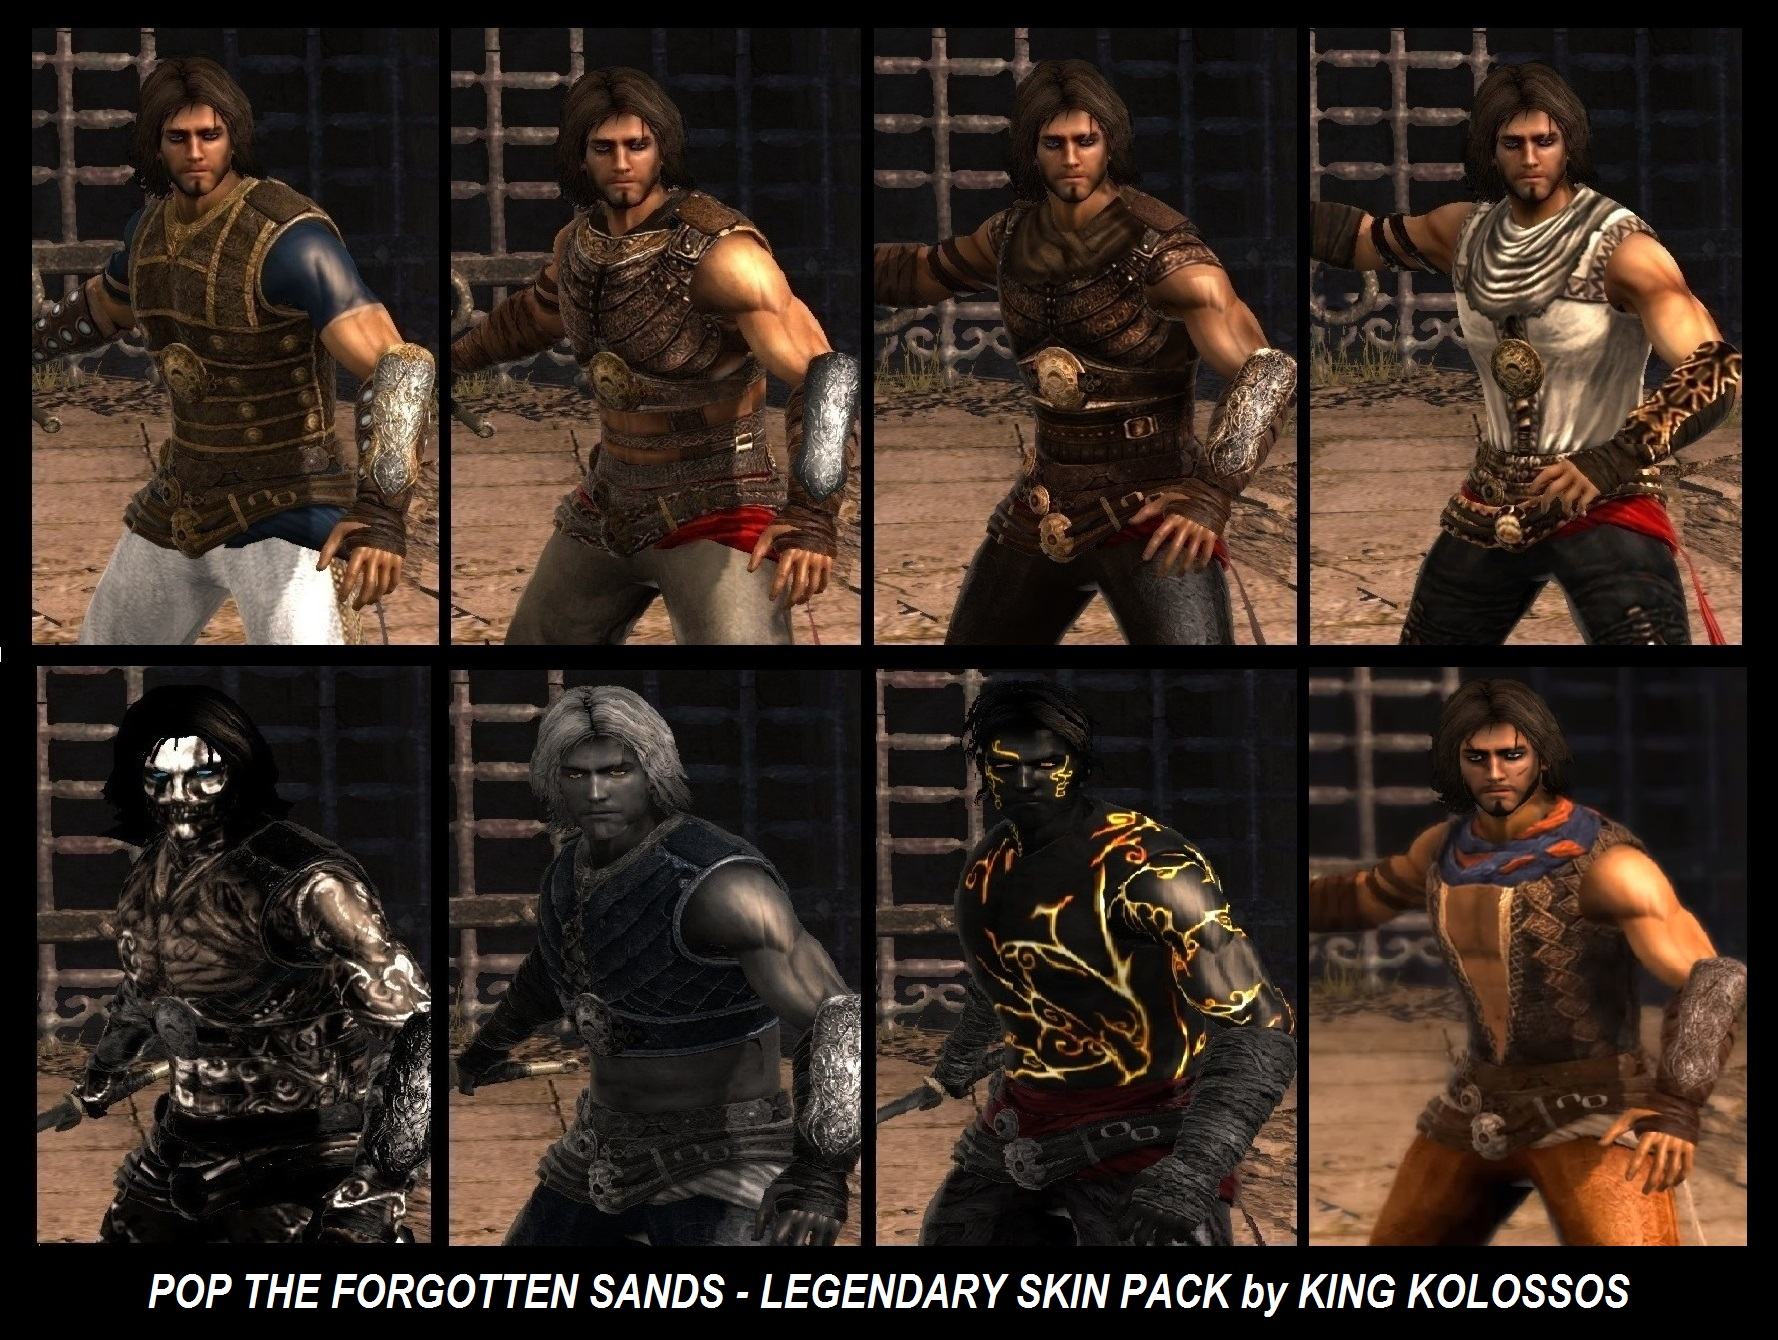 Wallpaper Image Prince Of Persia The Forgotten Sands Skin Mod